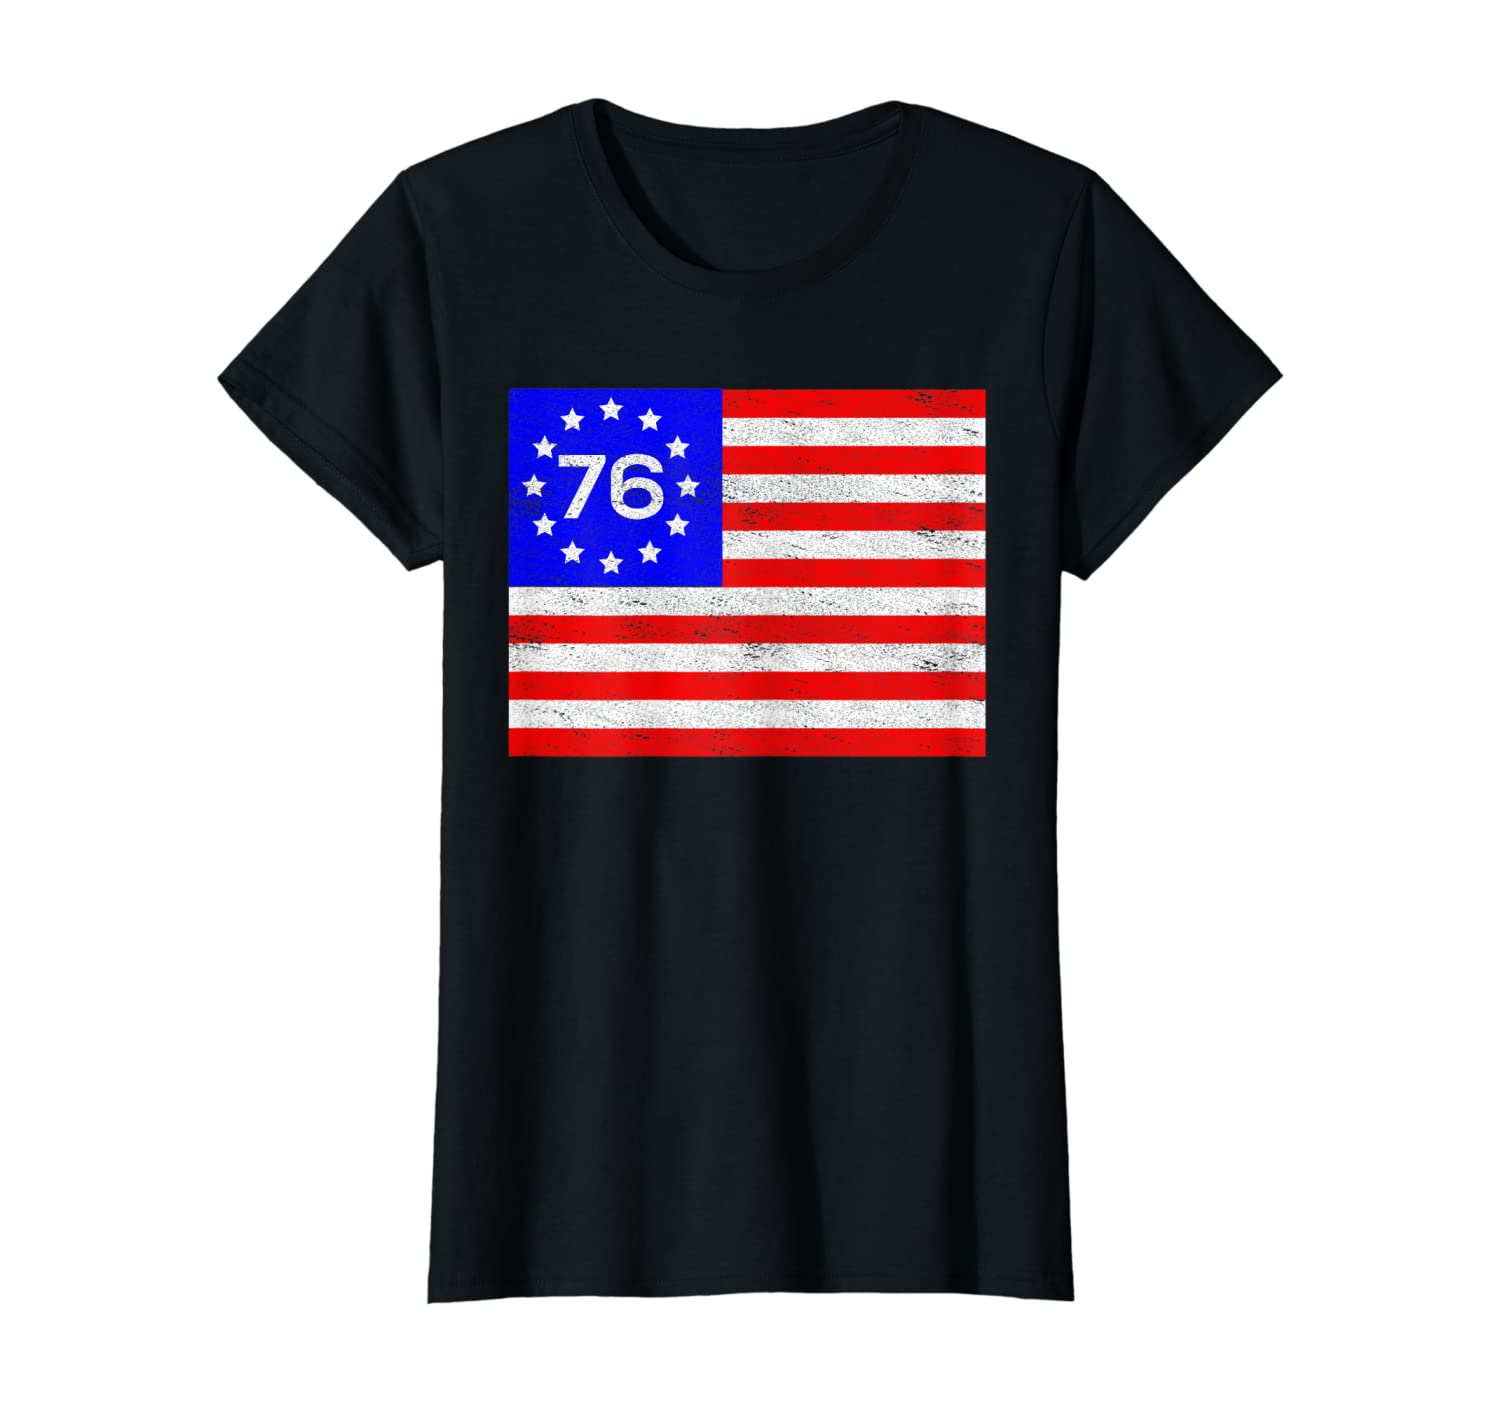 1776 13 Colonies Stars Betsy Ross Vintage Flag USA American T-Shirt